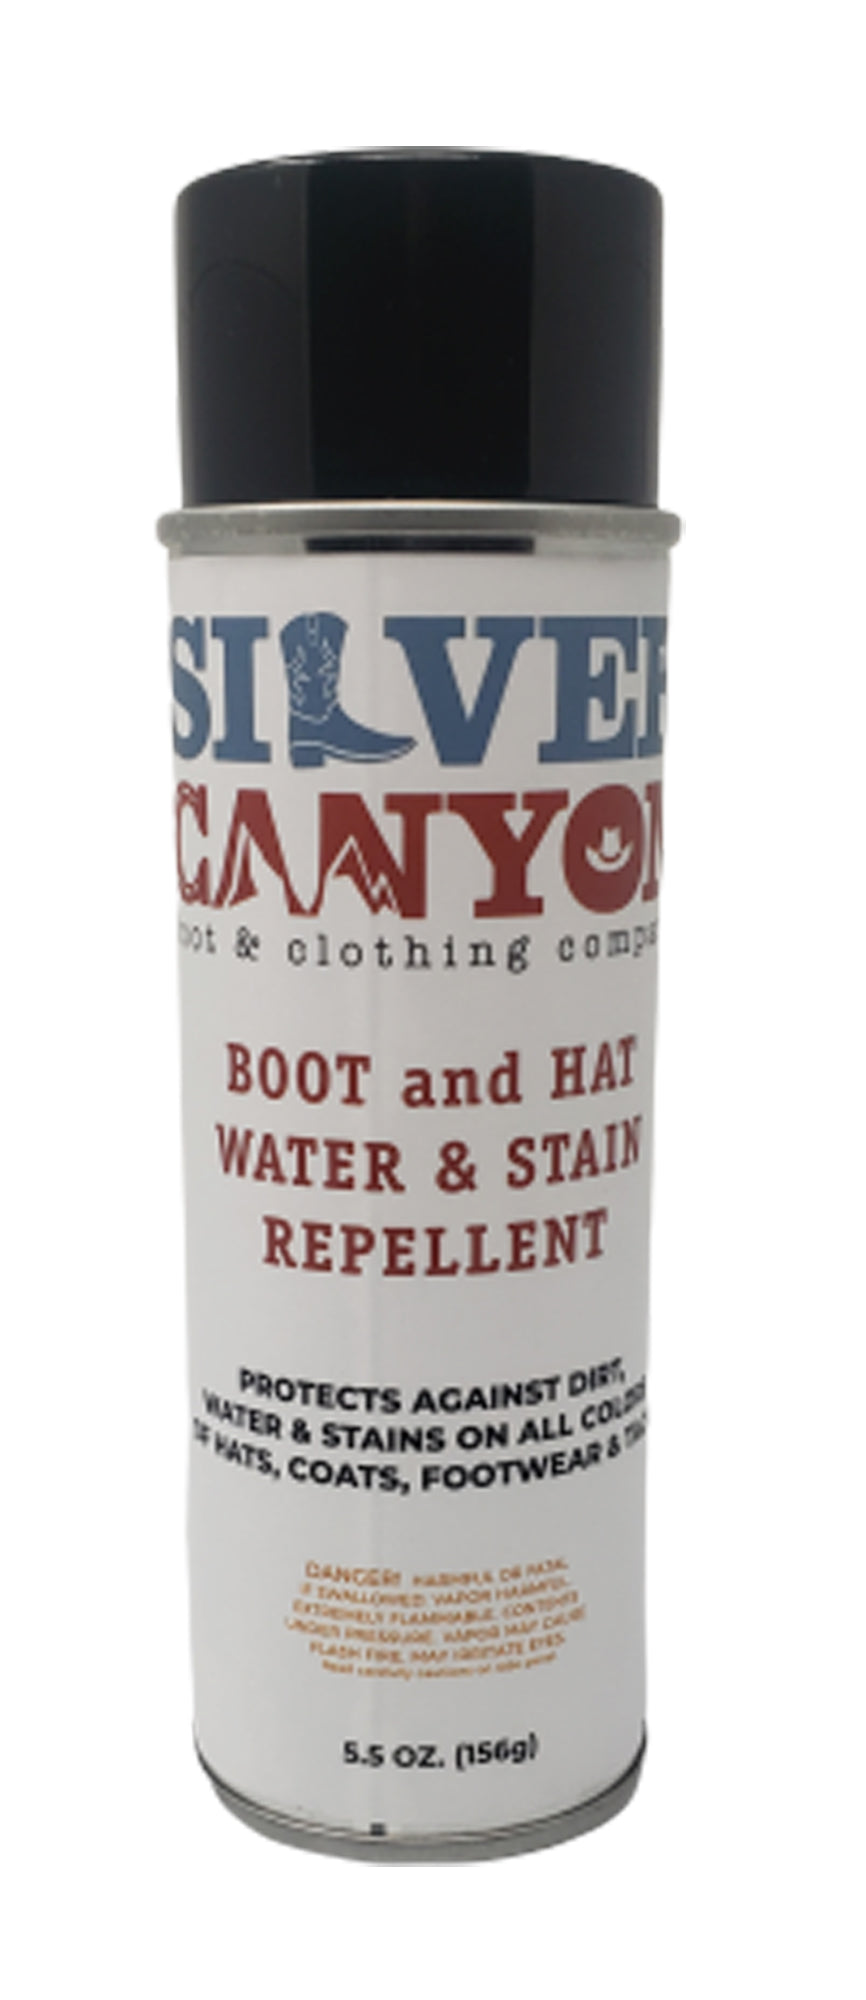 Silver Canyon Boot and Hat Water and Stain Repellent, 5.5oz, Leather and Suede Protector Waterproofing Spray Guard